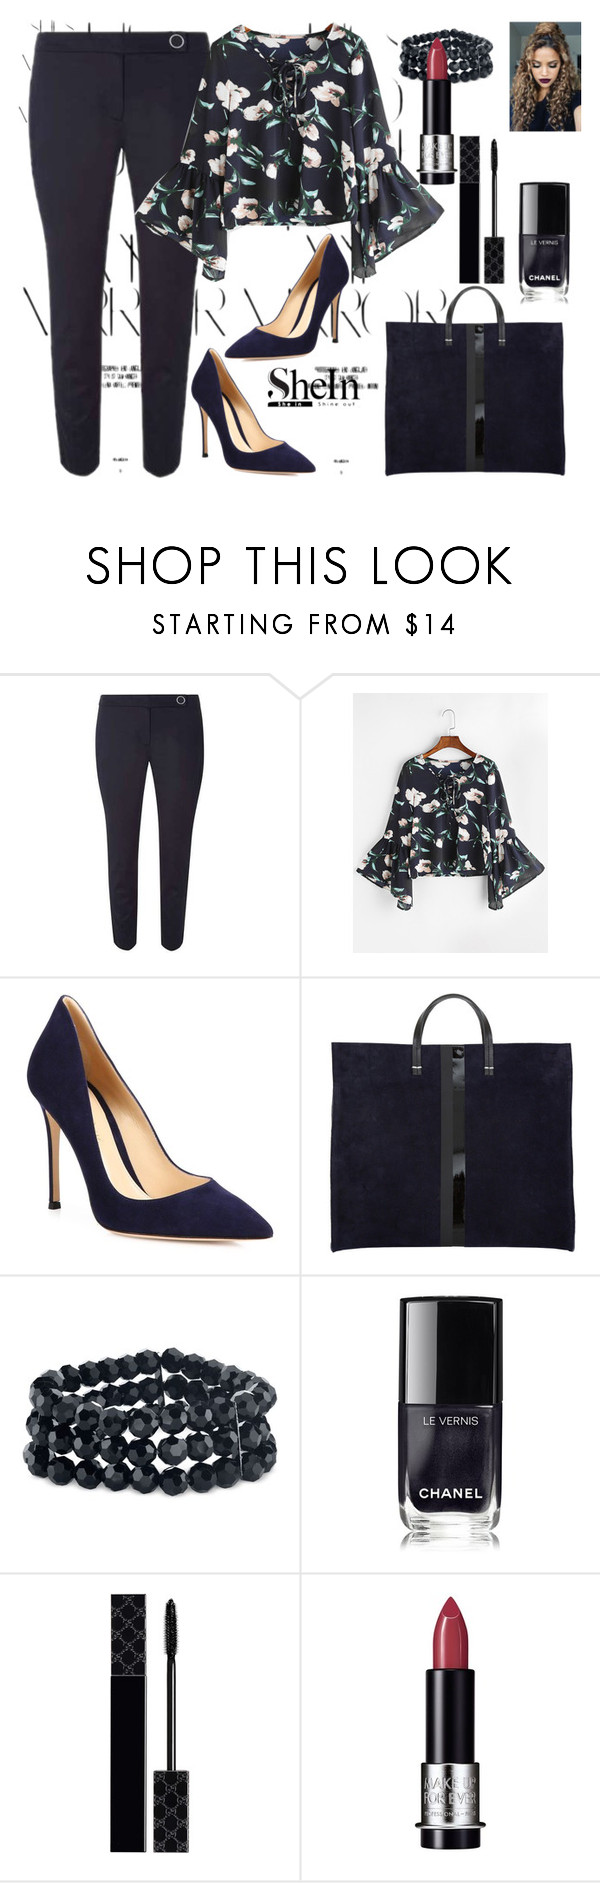 """shein"" by girl-321 ❤ liked on Polyvore featuring Rika, Dorothy Perkins, Gianvito Rossi, 2028, Chanel, Gucci and MAKE UP FOR EVER"